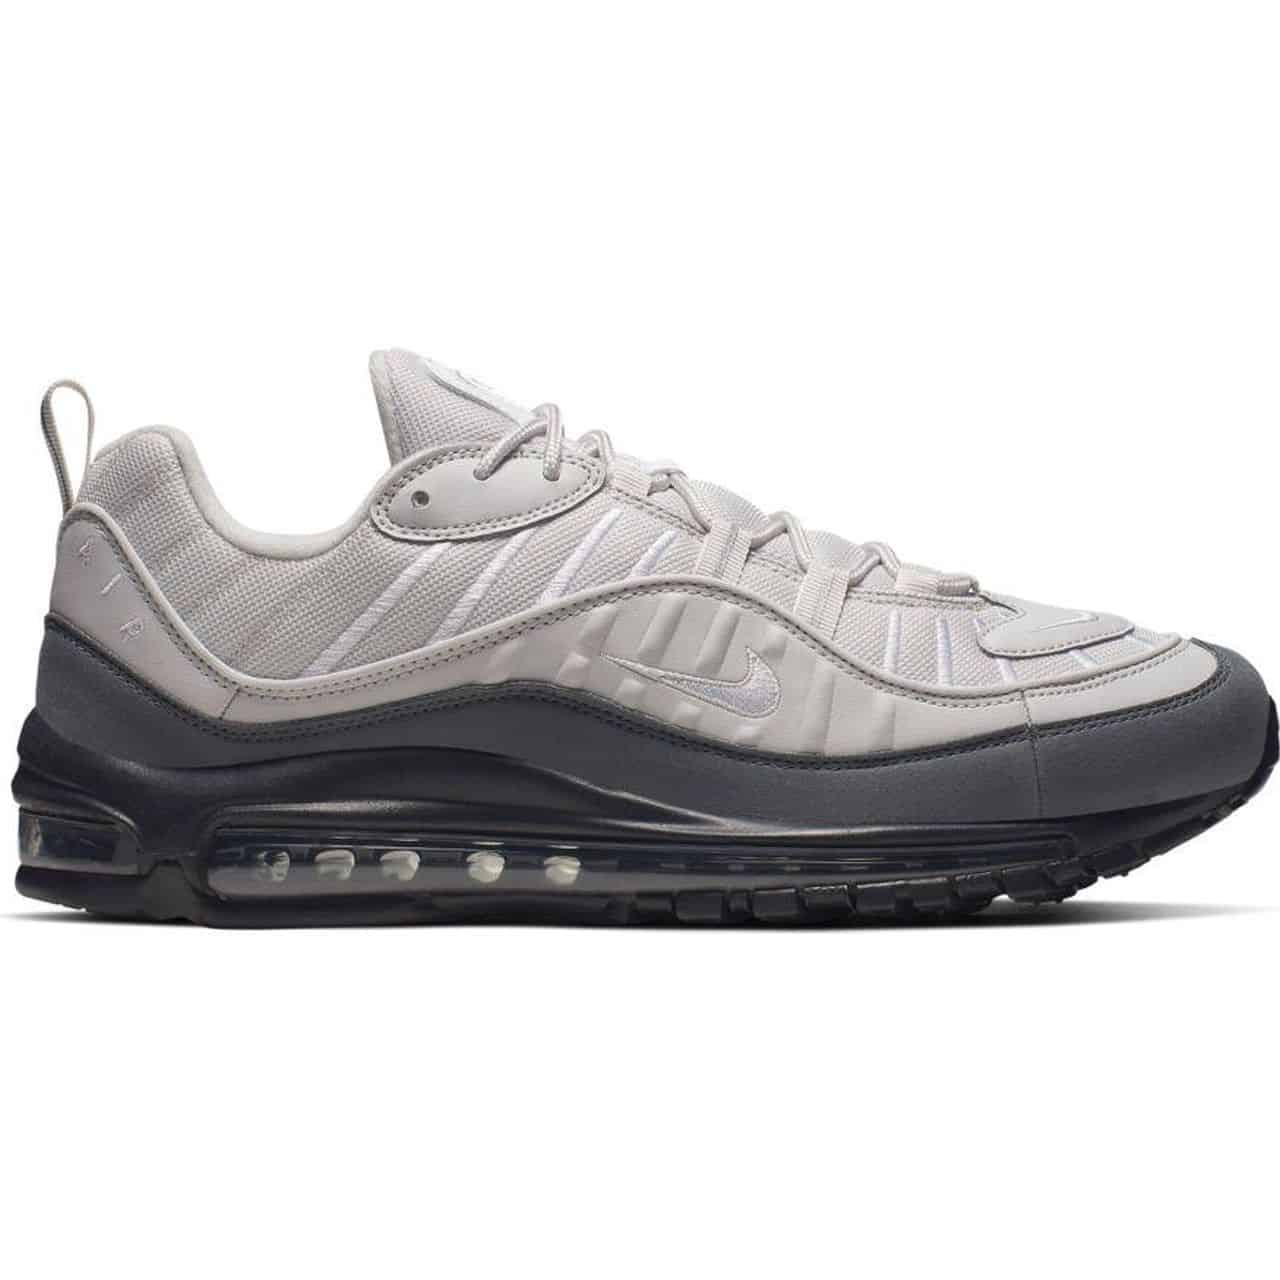 ADIDASI ORIGINALI NIKE AIR MAX 98 - 640744 111